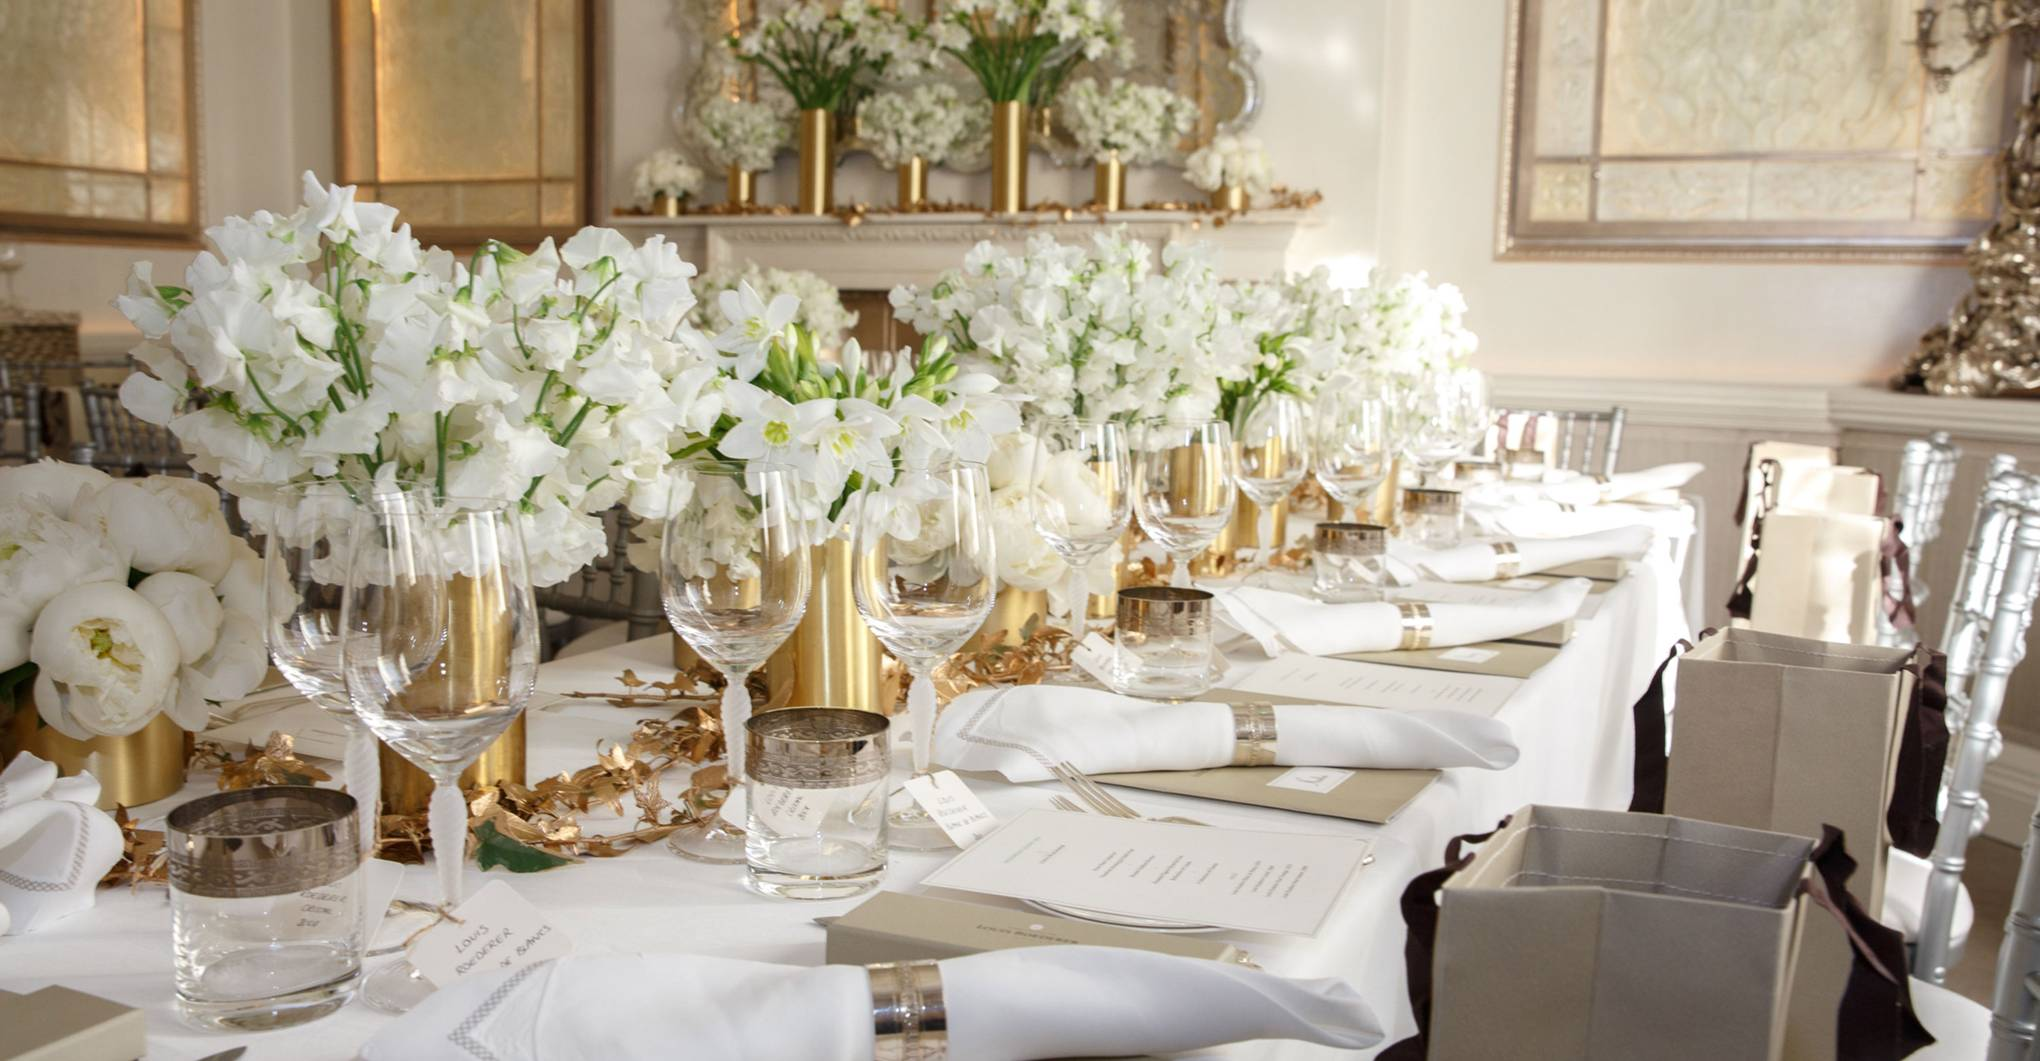 A night of Champagne with Louis Roederer at Annabel's